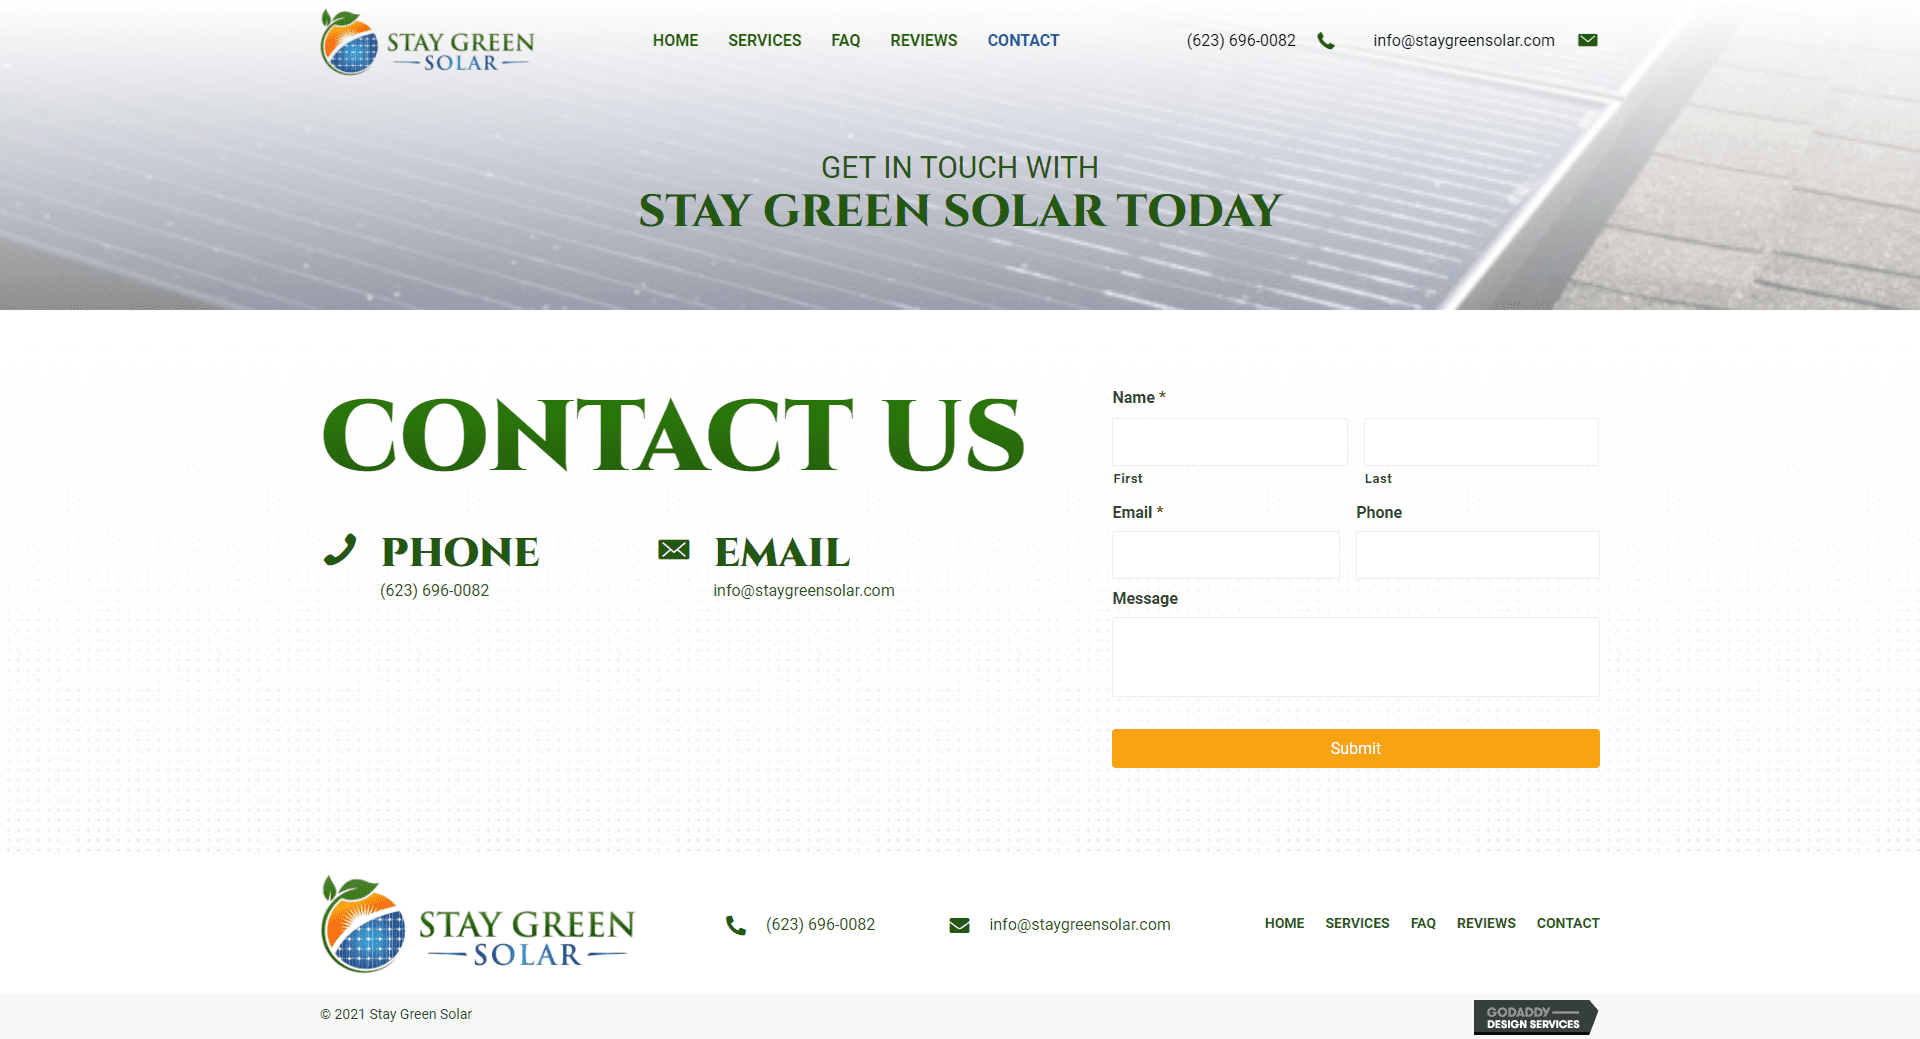 Stay Green Solar Contact